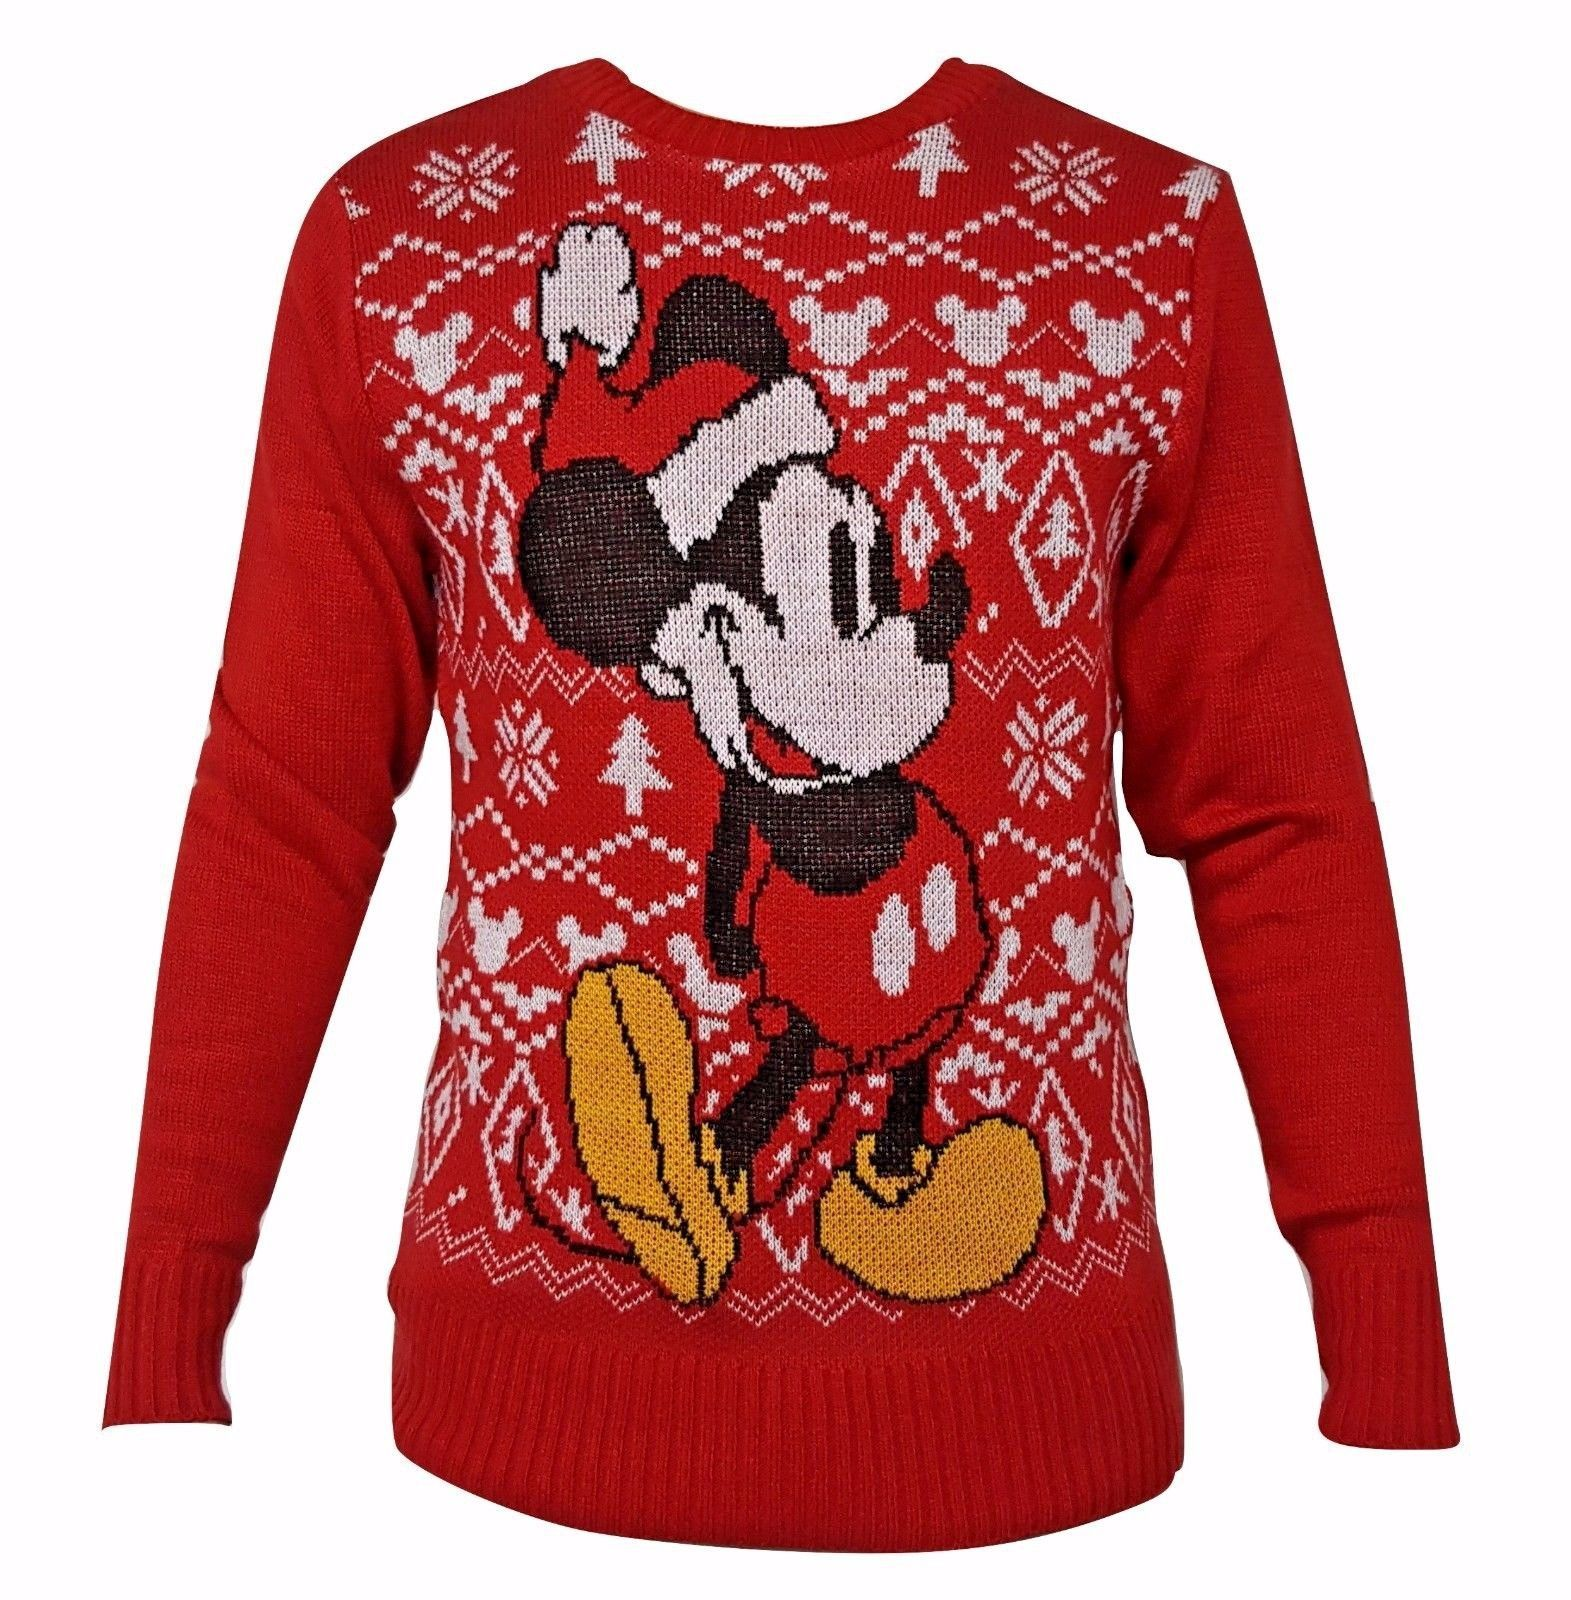 disney mickey mouse mens ugly christmas sweater official licensed product 1999 - Disney Christmas Sweaters